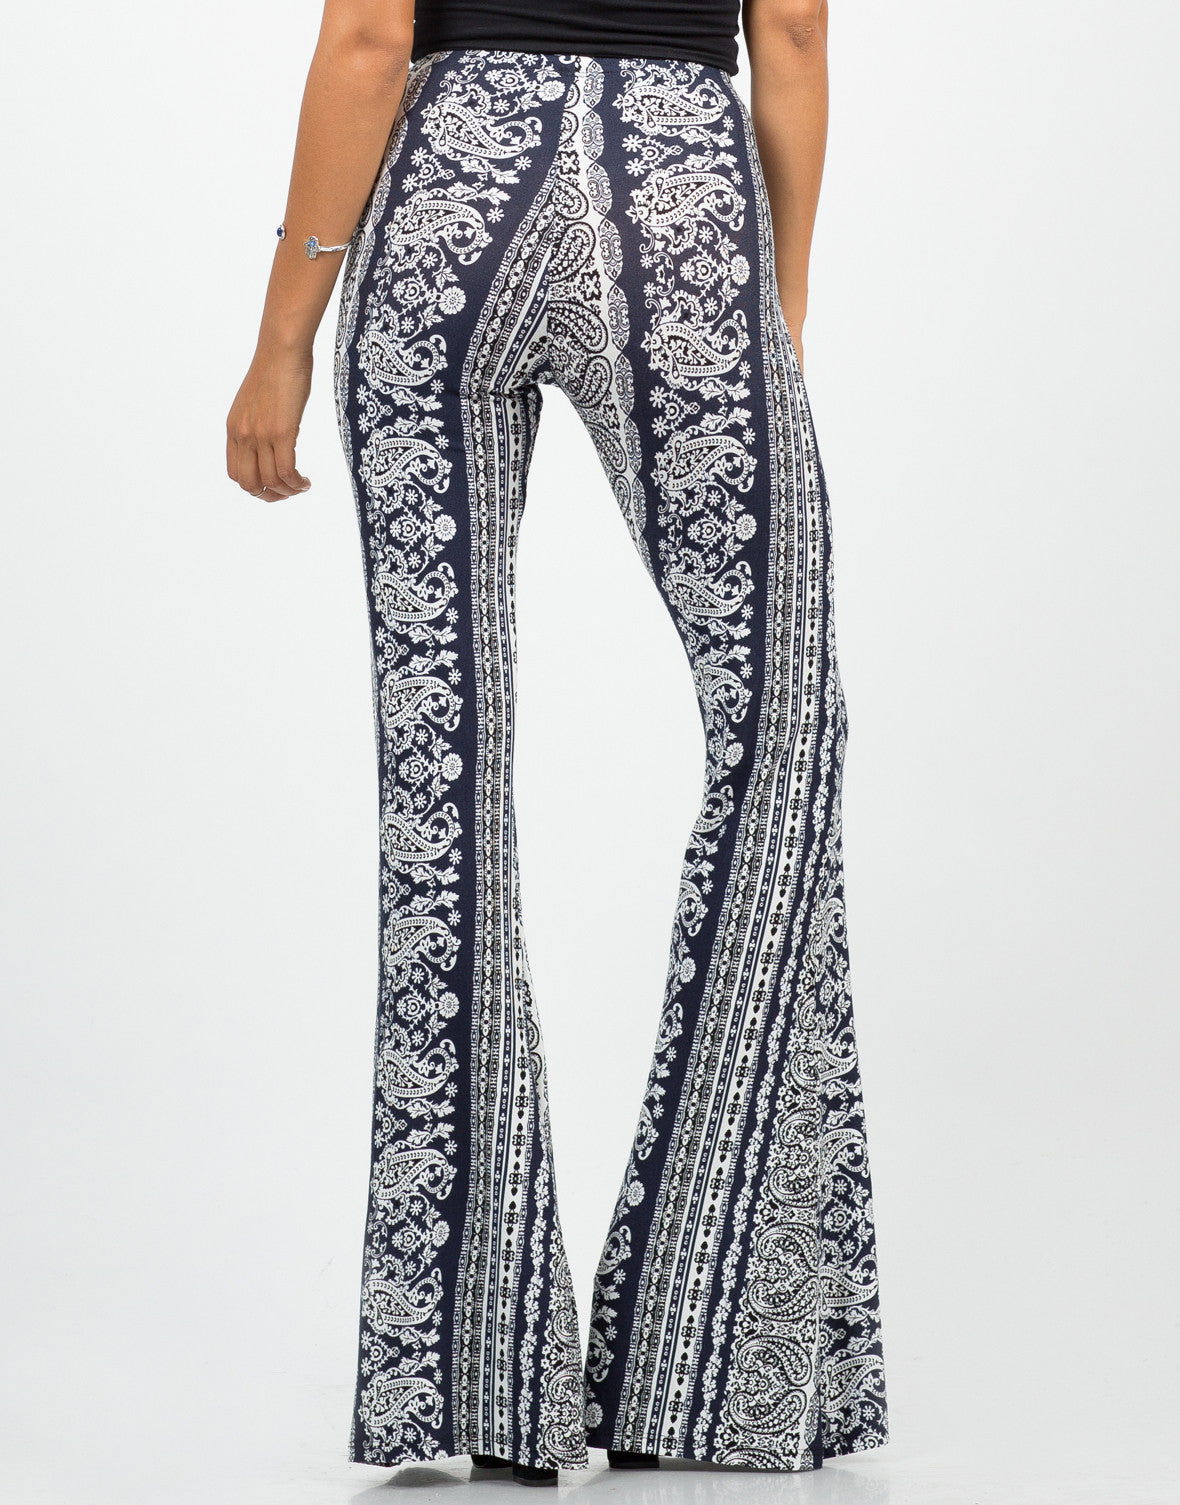 Back View of Paisley Stretchy Flared Pants